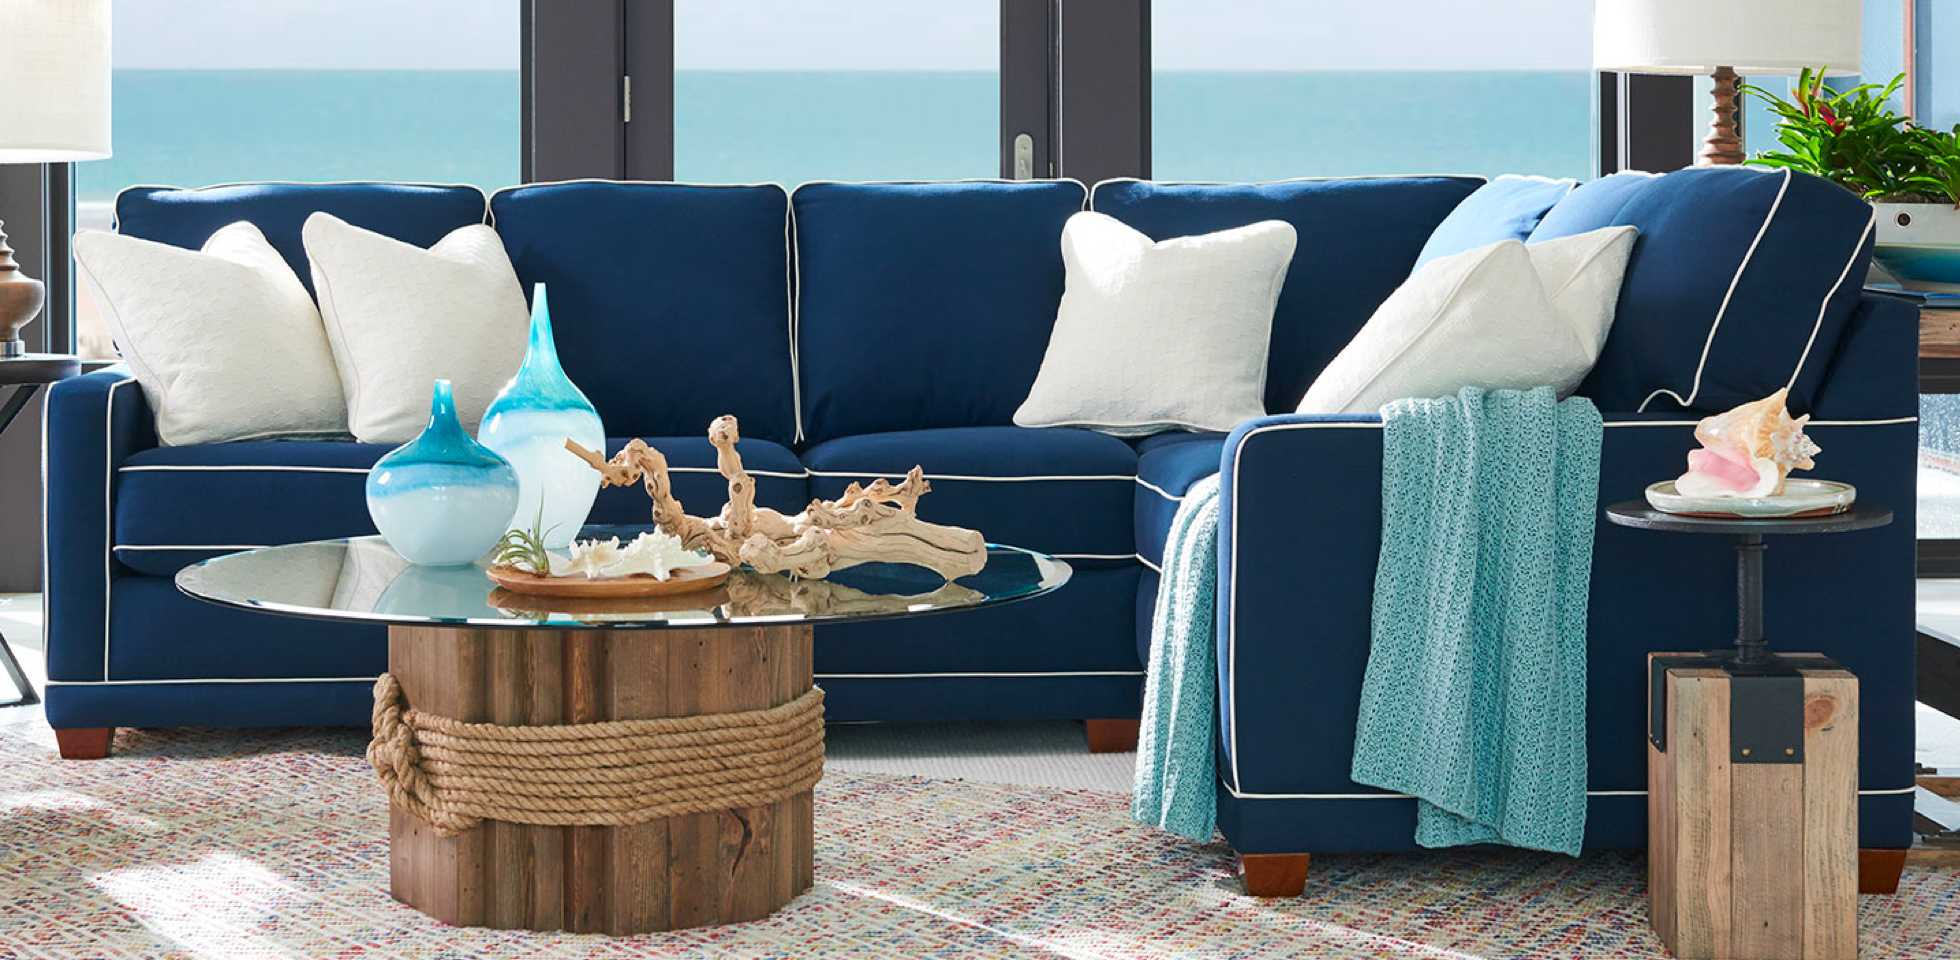 Room scene with Kennedy Stationary Sectional and beach-inspired colors